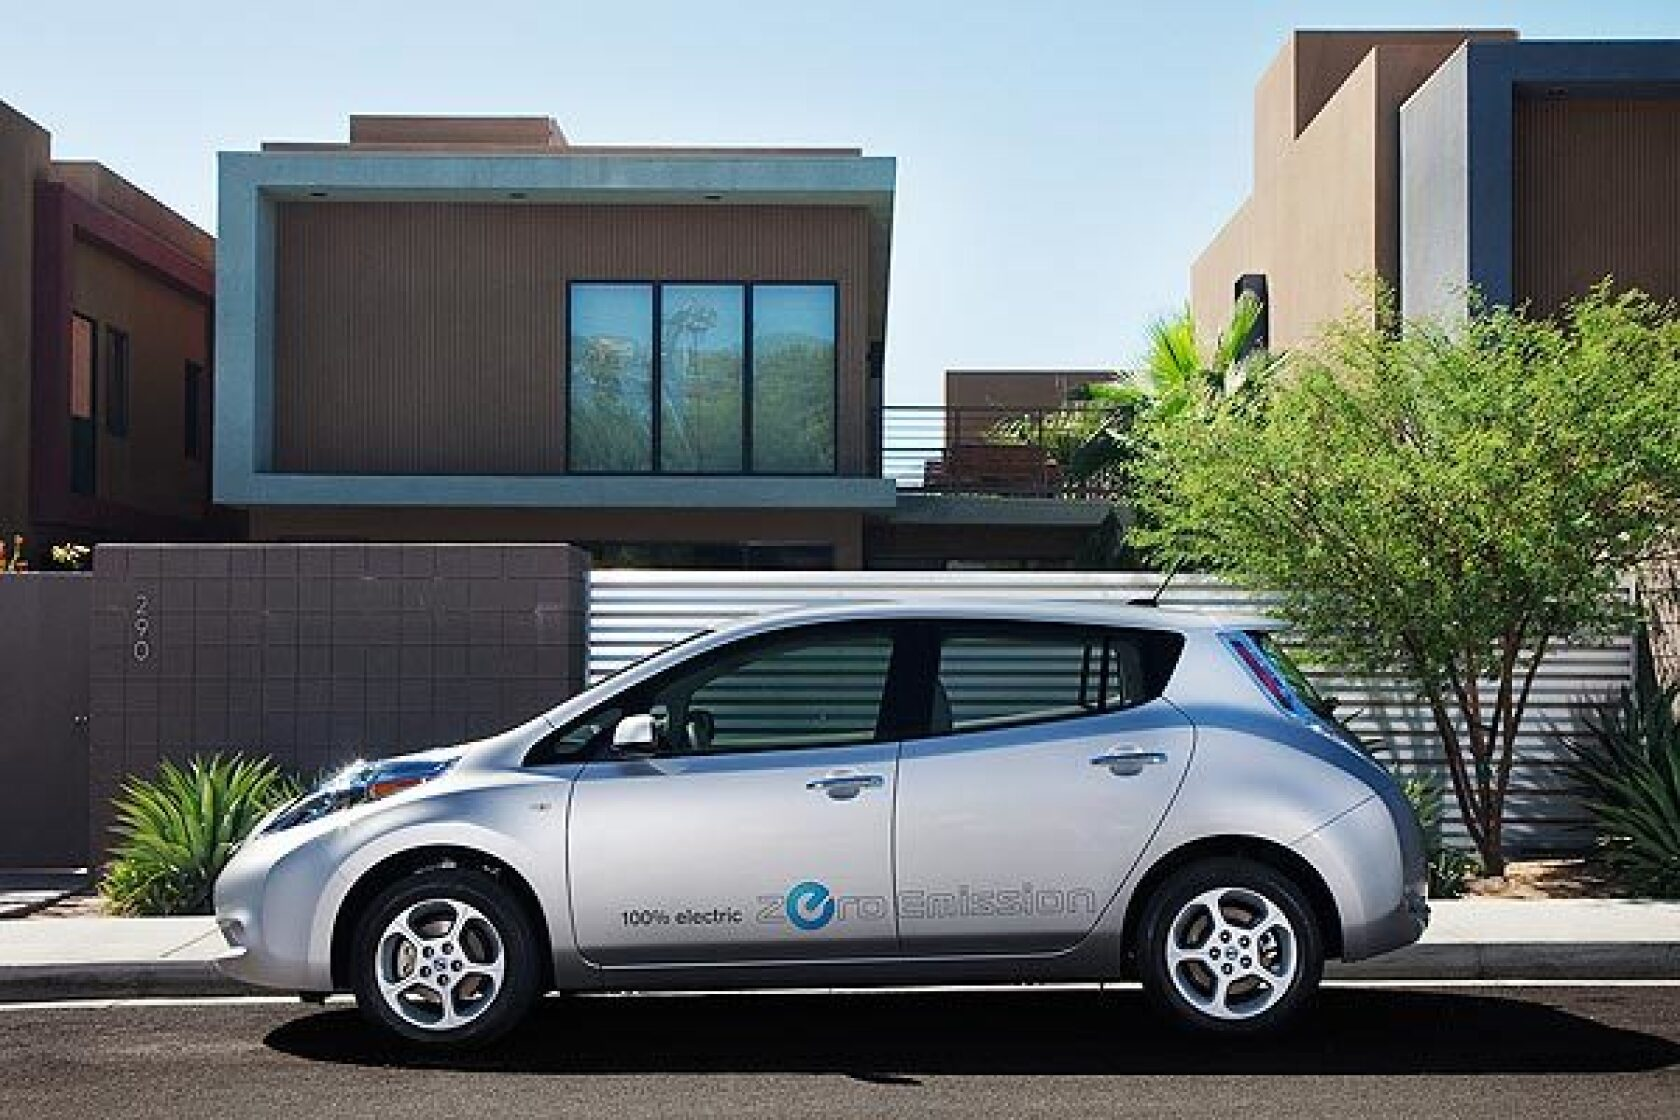 Nissan Leaf review: A revolutionary electric vehicle that